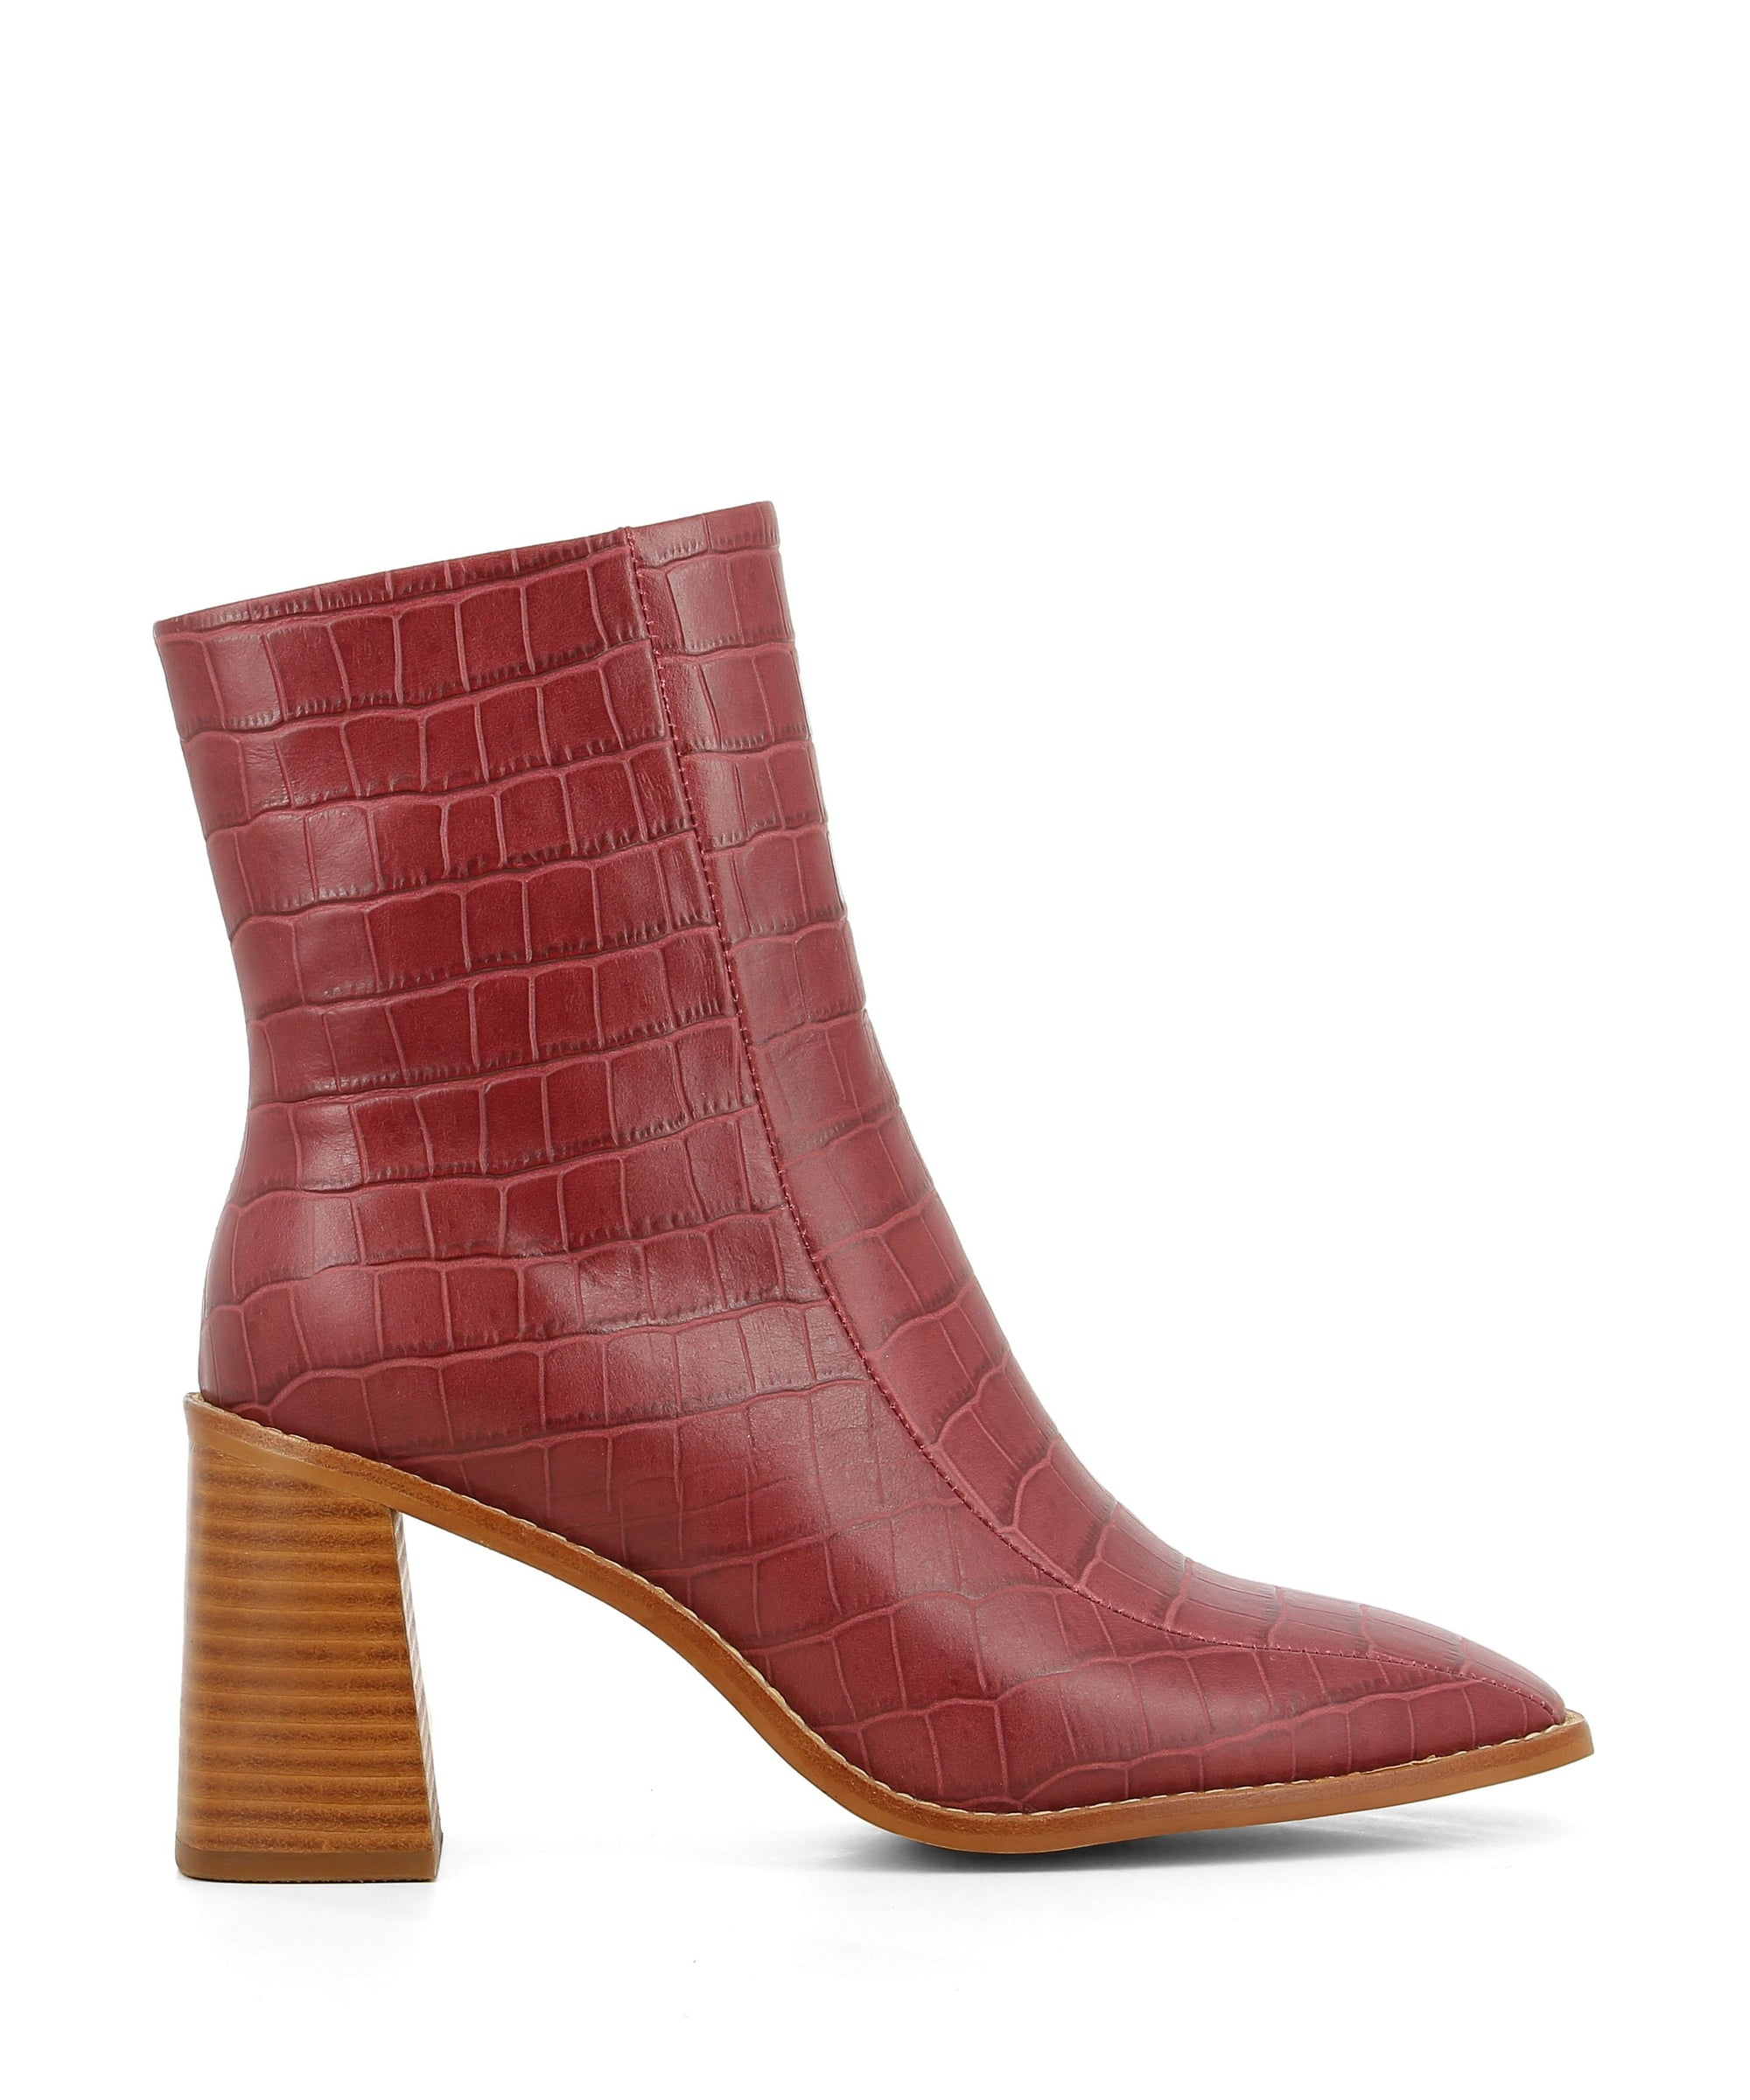 Red Wine Croc leather ankle boots that have a zipper fastening and feature a 7.5cm wooden block heel and a square toe by 2 Baia Vista.